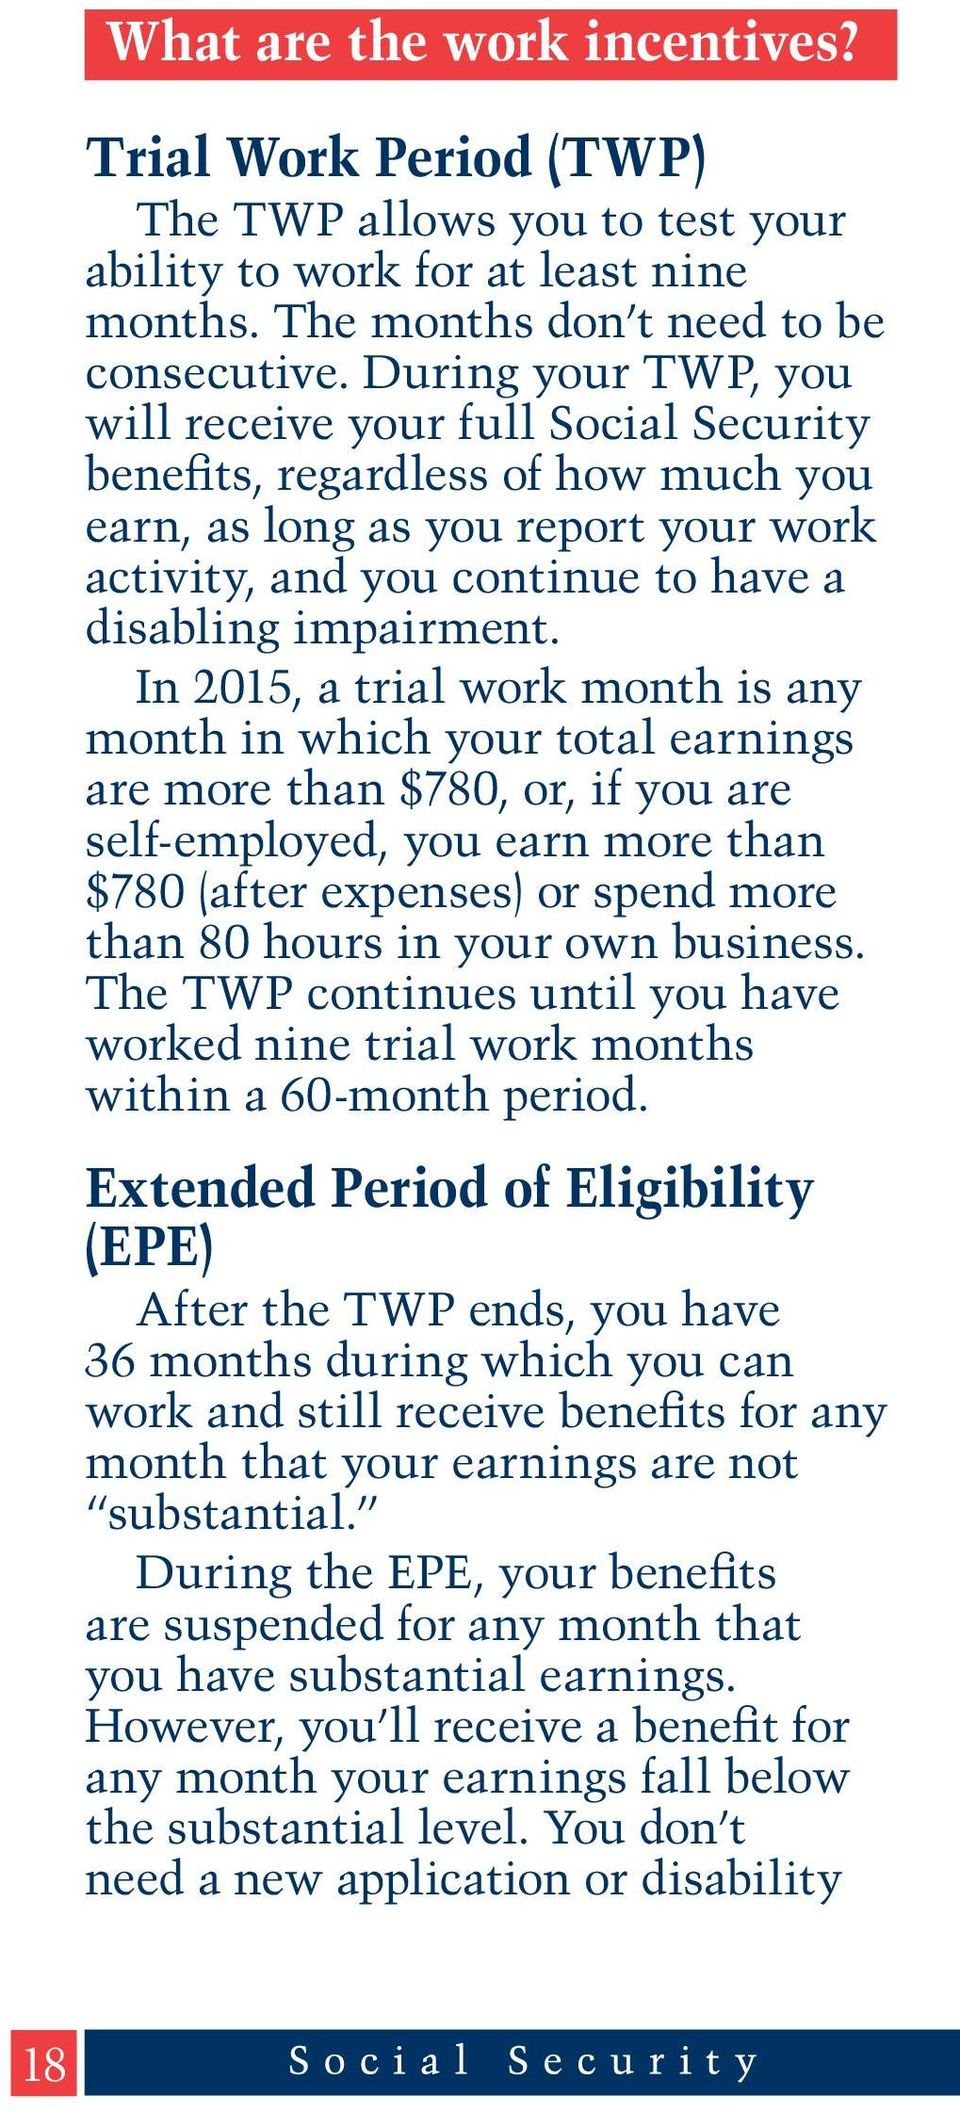 In 2015, a trial work month is any month in which your total earnings are more than $780, or, if you are self-employed, you earn more than $780 (after expenses) or spend more than 80 hours in your